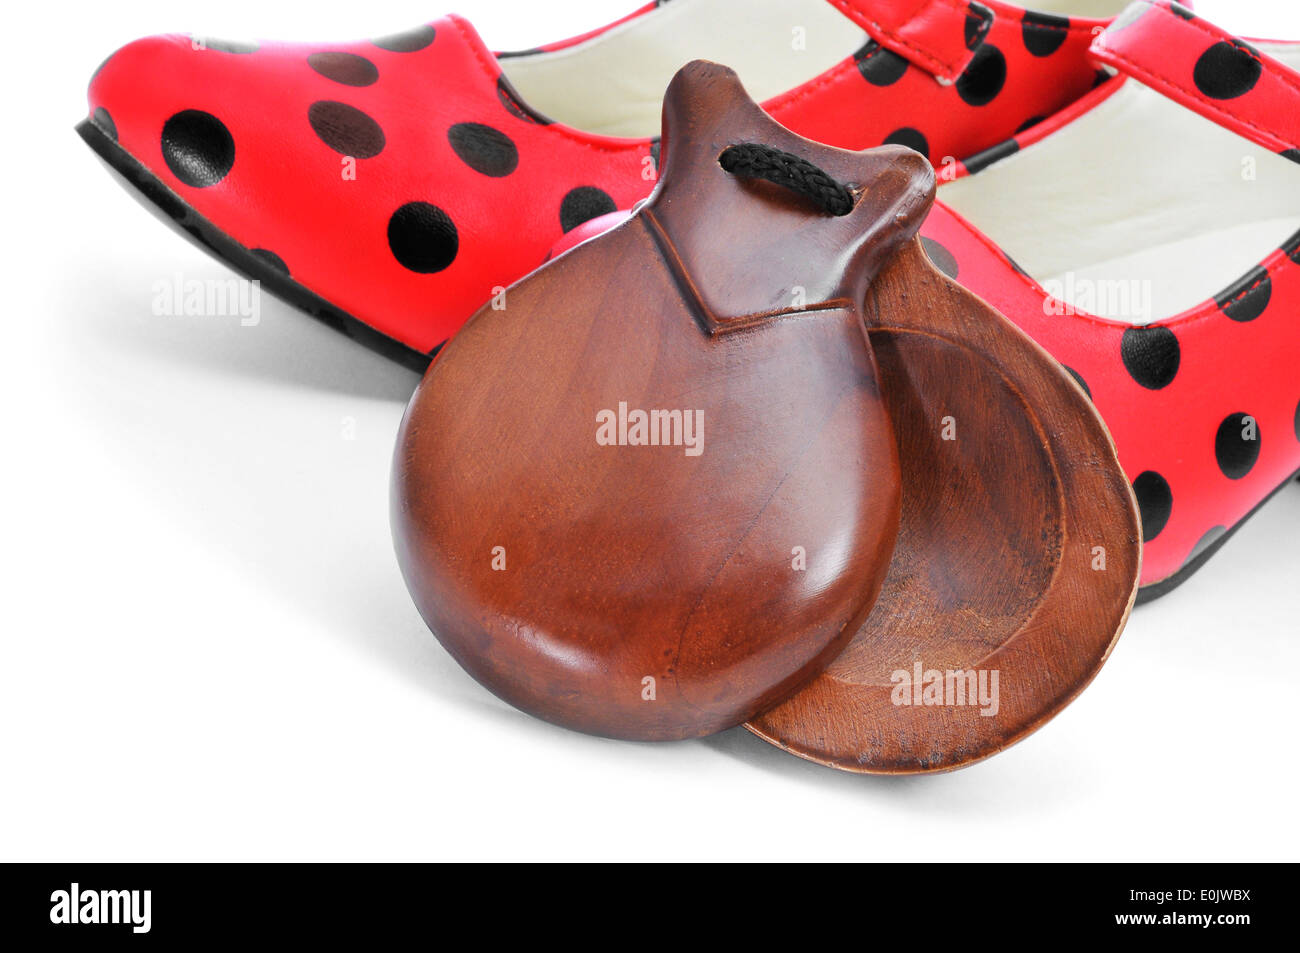 spanish castanets and typical dot-patterned red flamenco shoes, on a white background - Stock Image